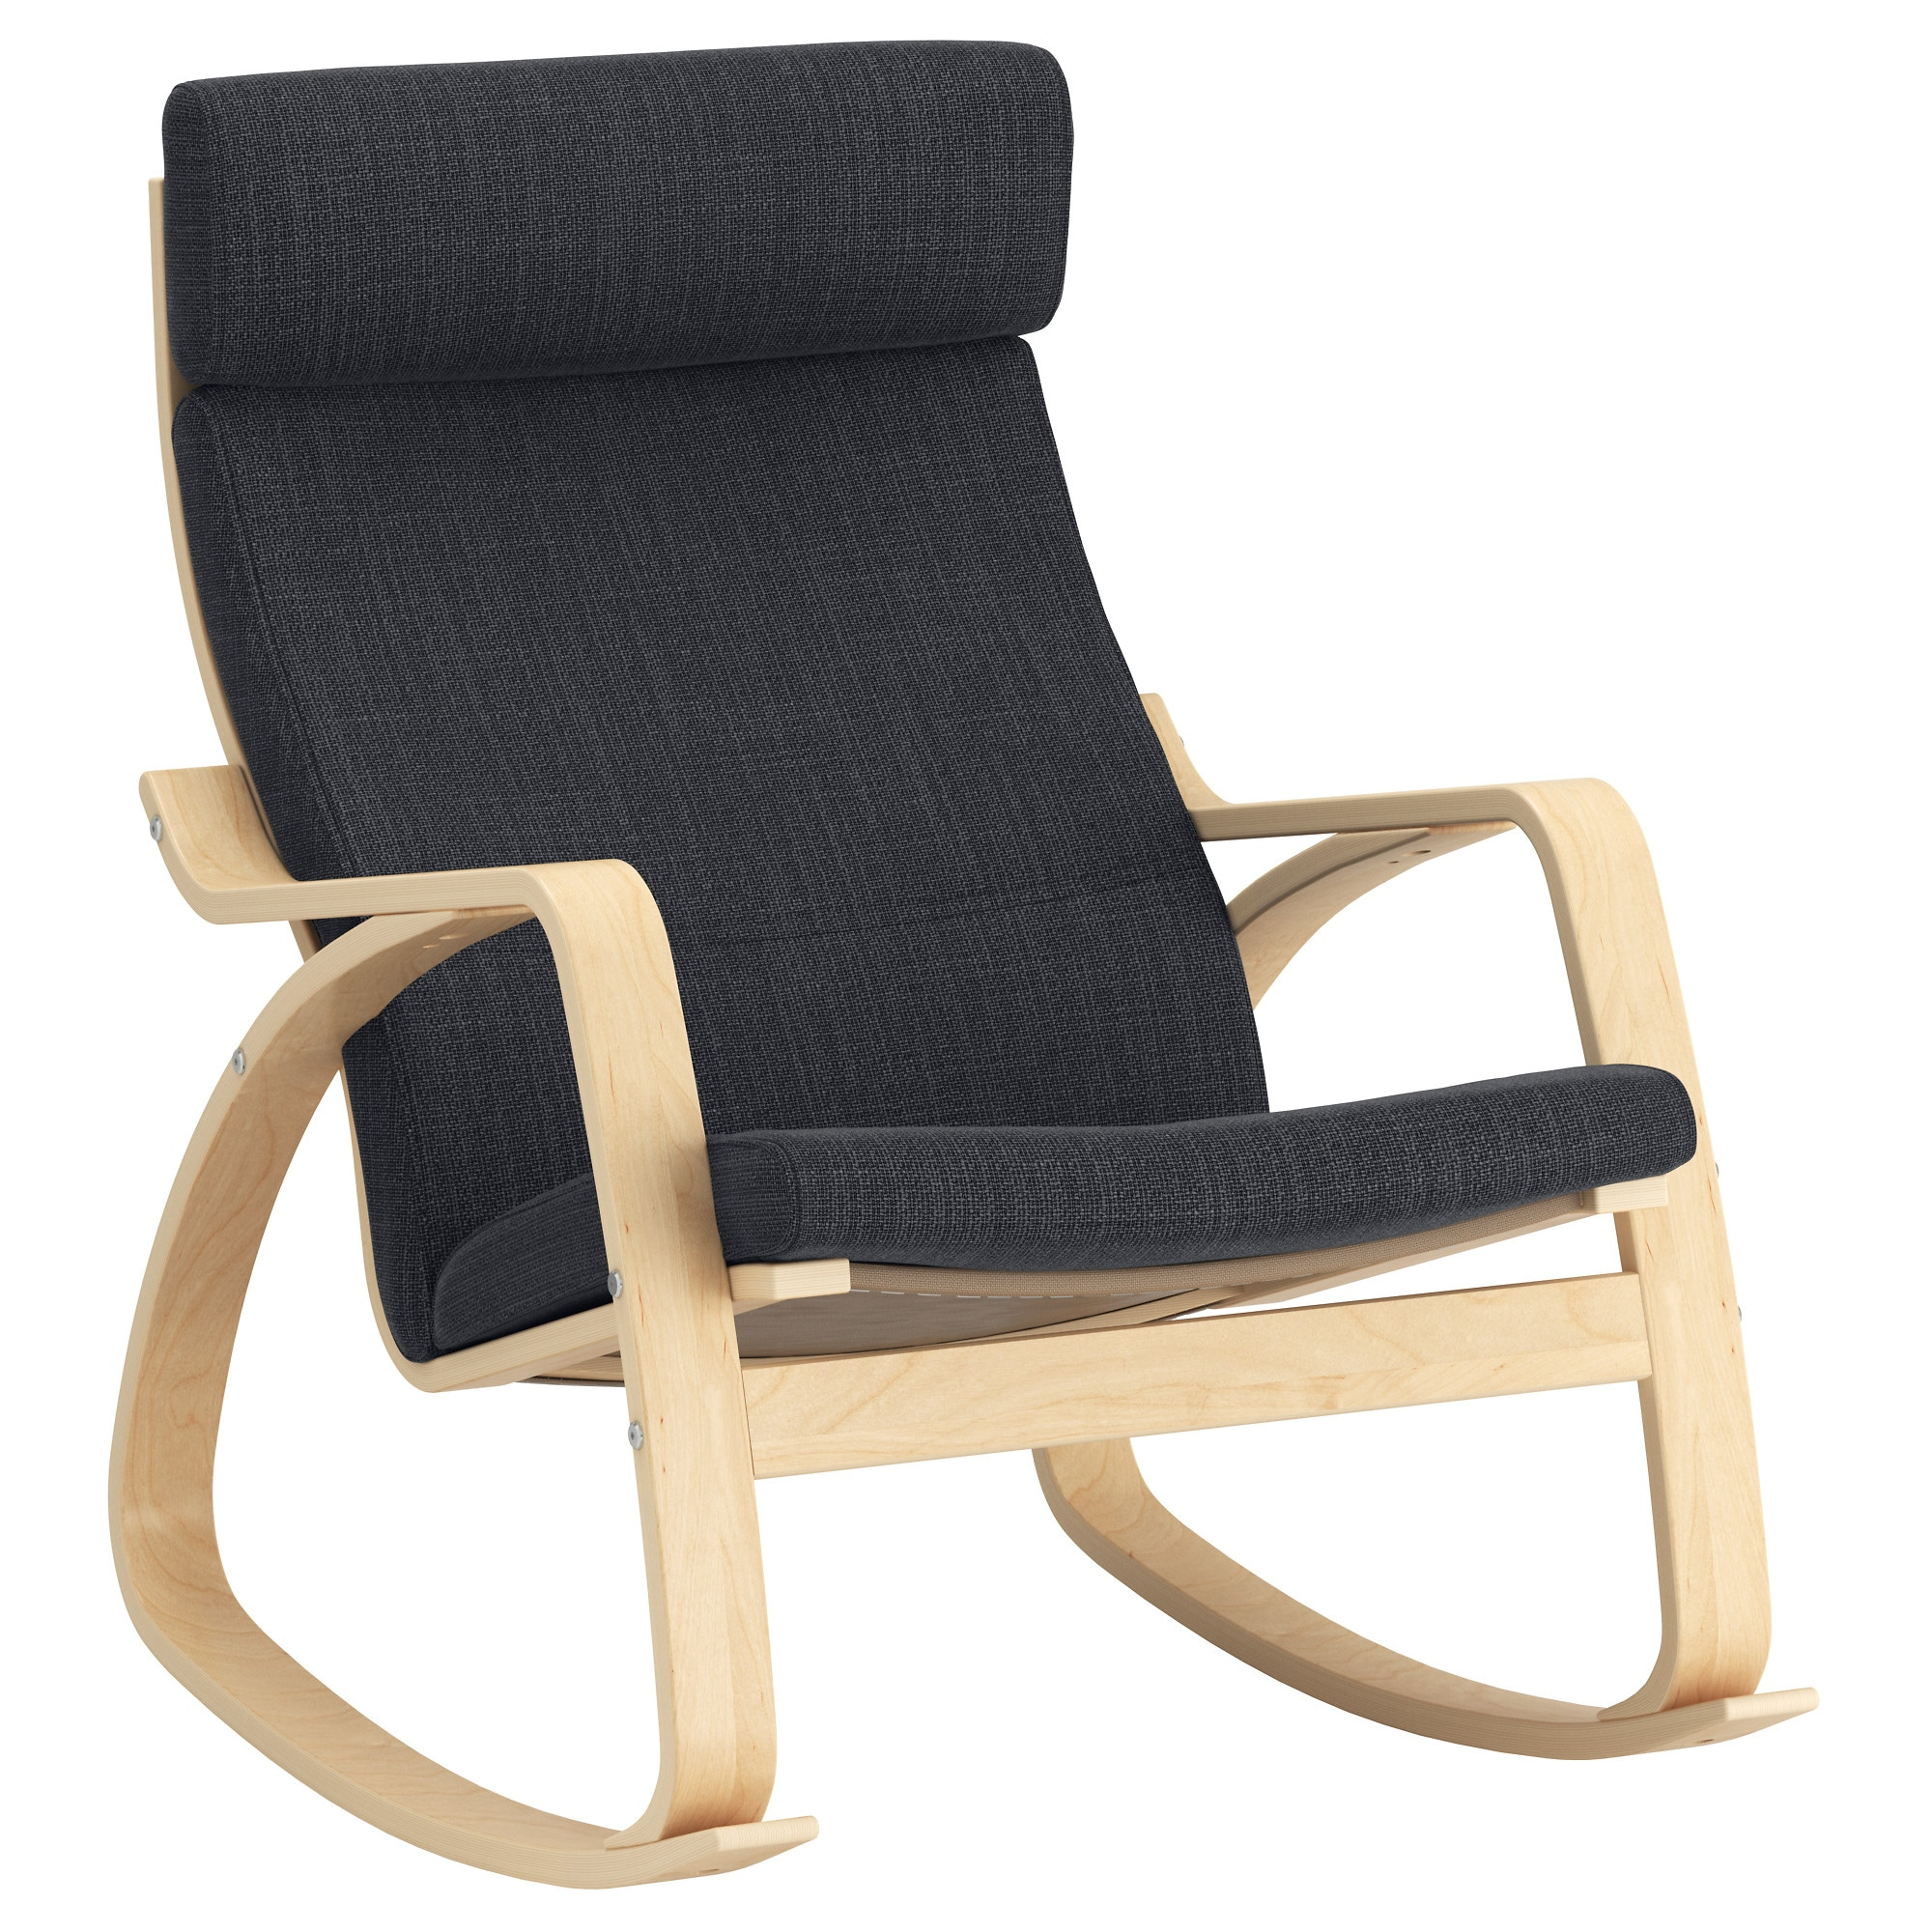 Easy Outdoor Rocking Lounge Chairs Intended For Most Popular Poäng – Rocking Chair, Birch Veneer, Hillared Anthracite (Gallery 19 of 25)